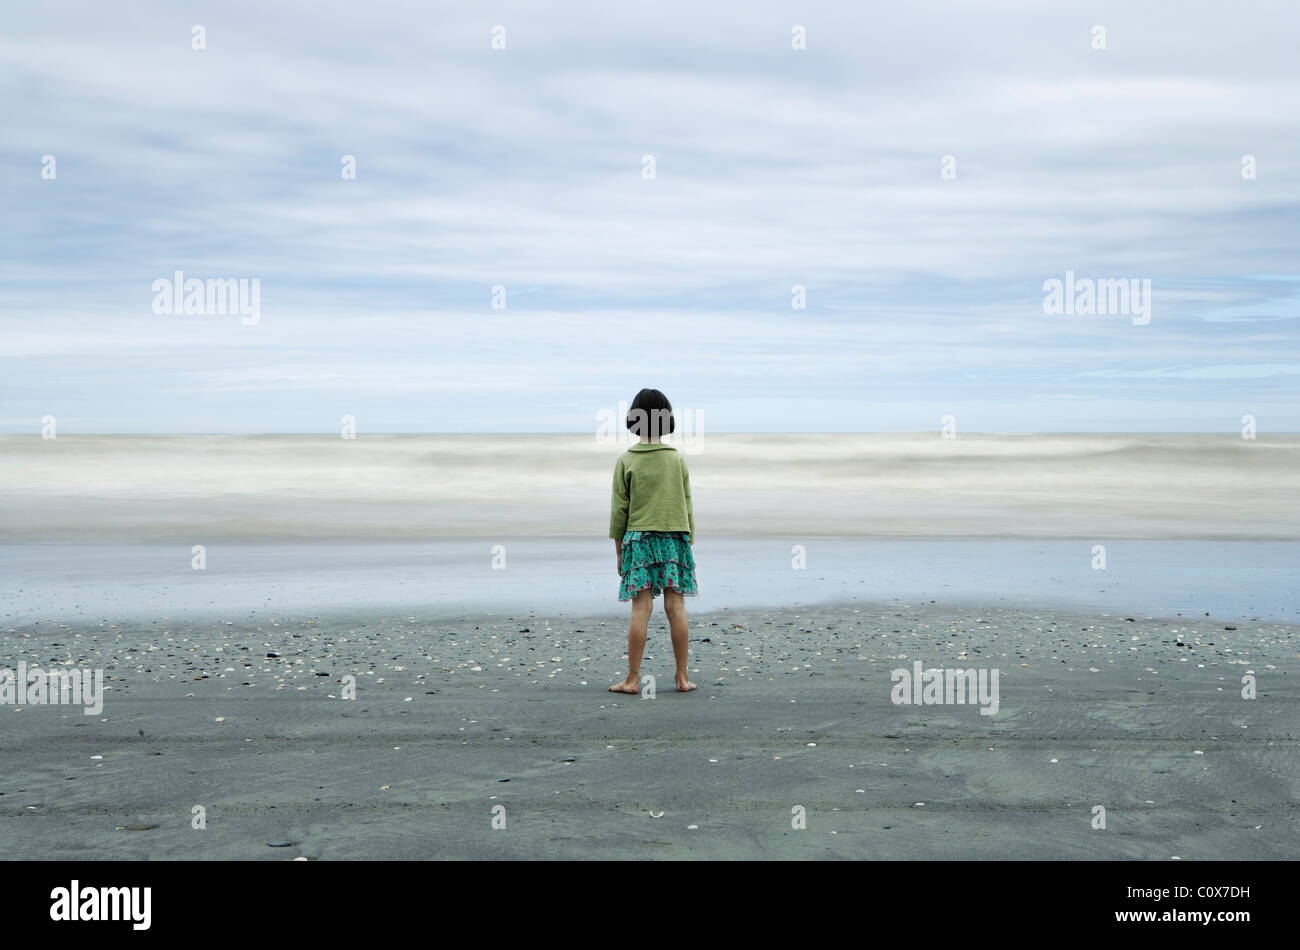 Girl in sharp focus looks at sea, with waves blurred by long exposure; black volcanic sand, Manawatu, New Zealand. Stock Photo